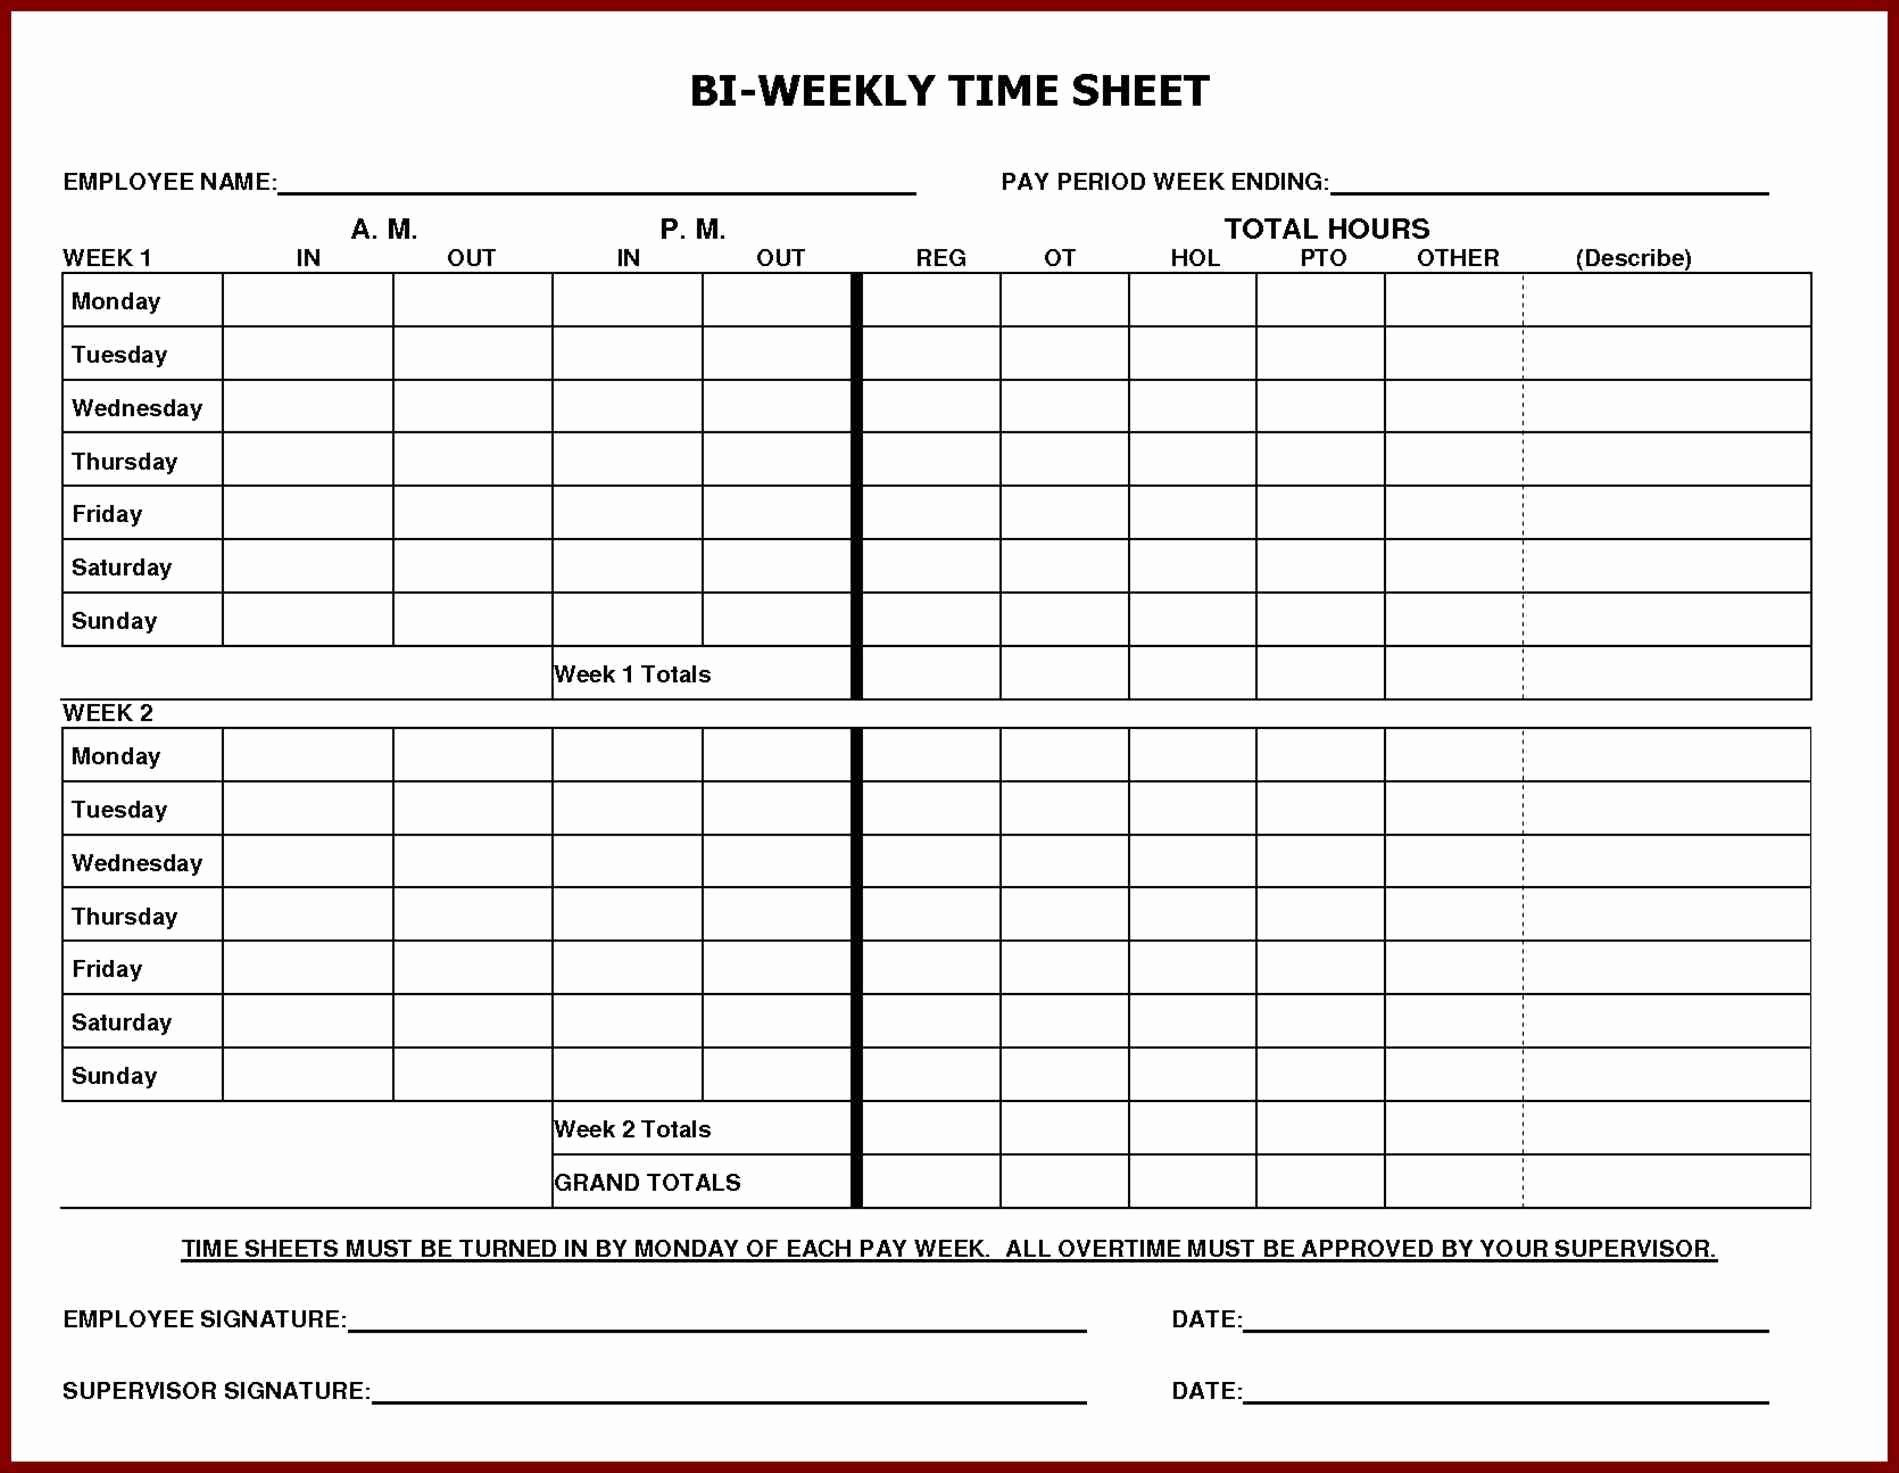 Weekly Employee Timesheet Template New Daily Time Sheet Printable Printable 360 Degree